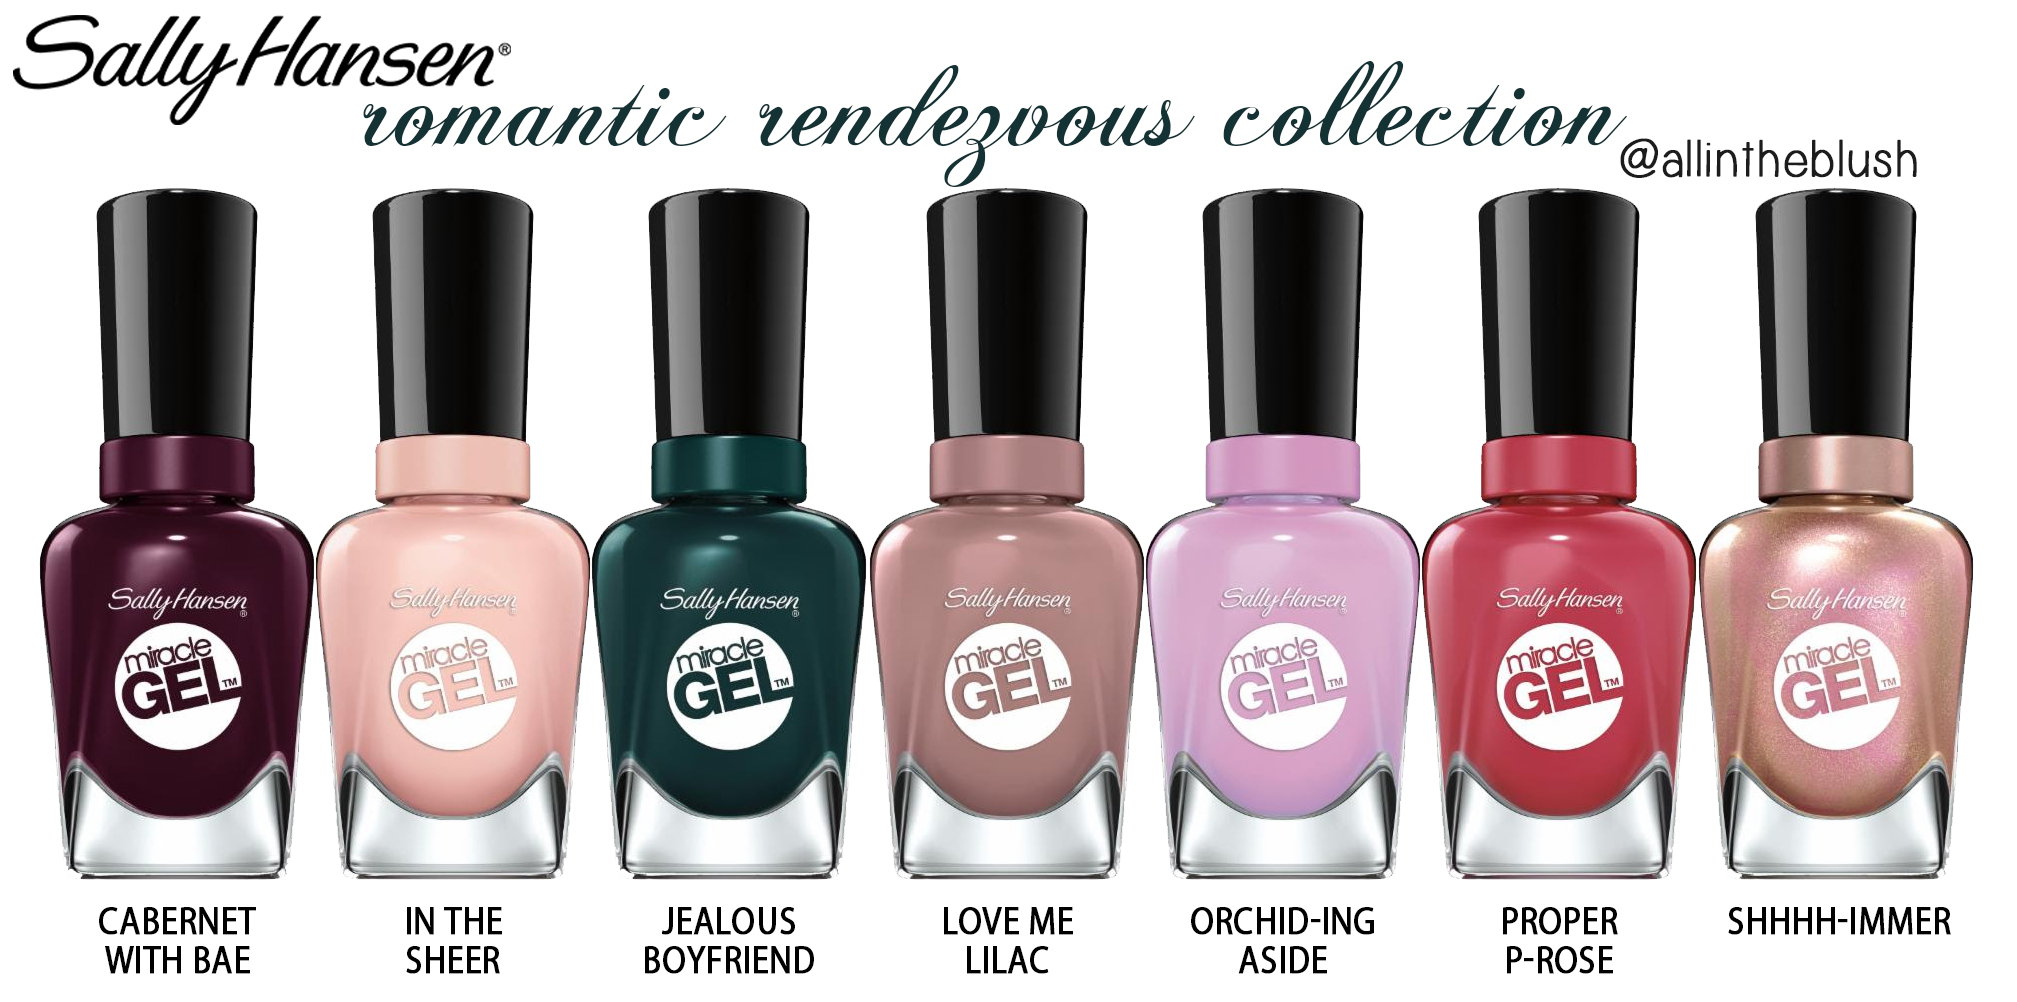 Romantic Rendezvous Collection